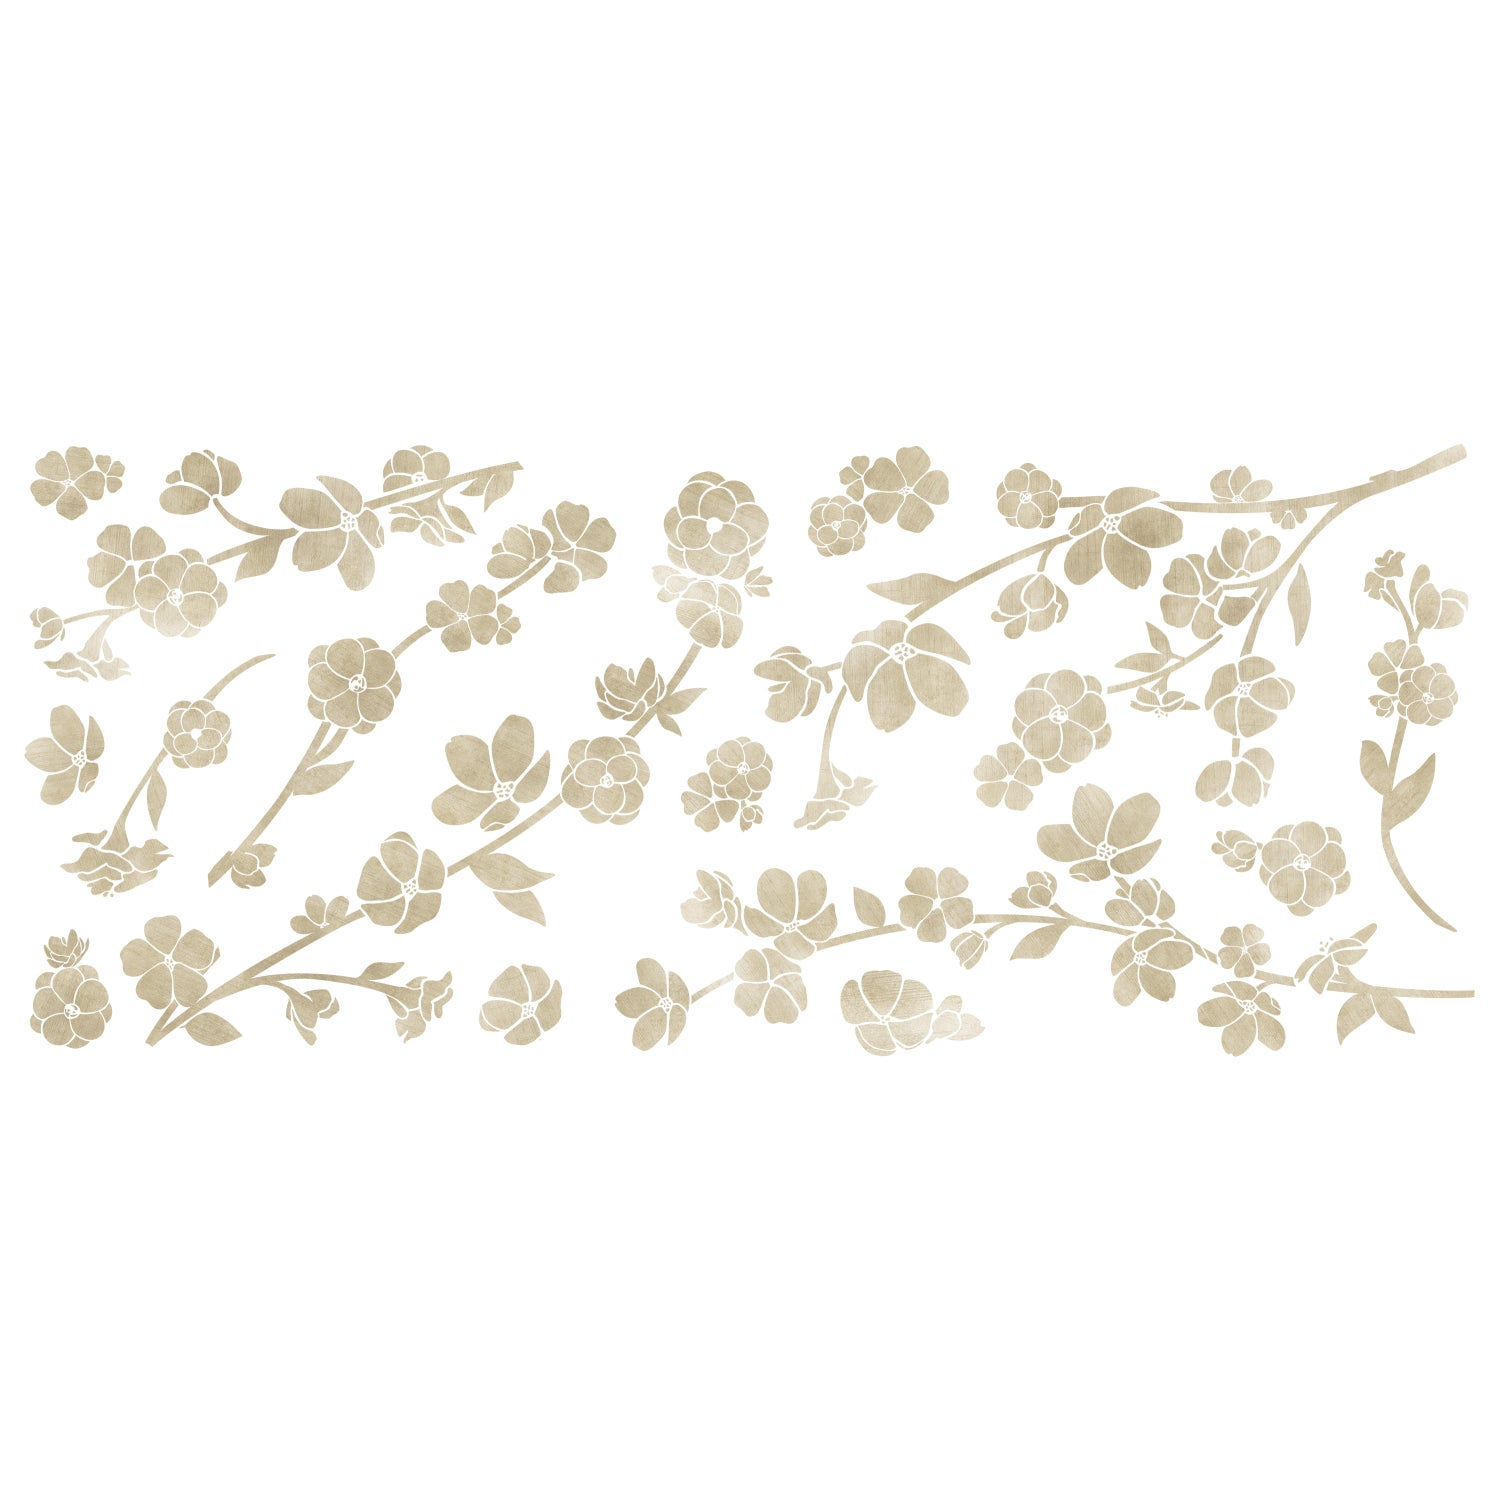 7609ec765 Shop Roommates Floral Blossom with 3D Flower Embellishments Giant Peel and Stick  Wall Decals - Free Shipping On Orders Over  45 - Overstock - 13042848